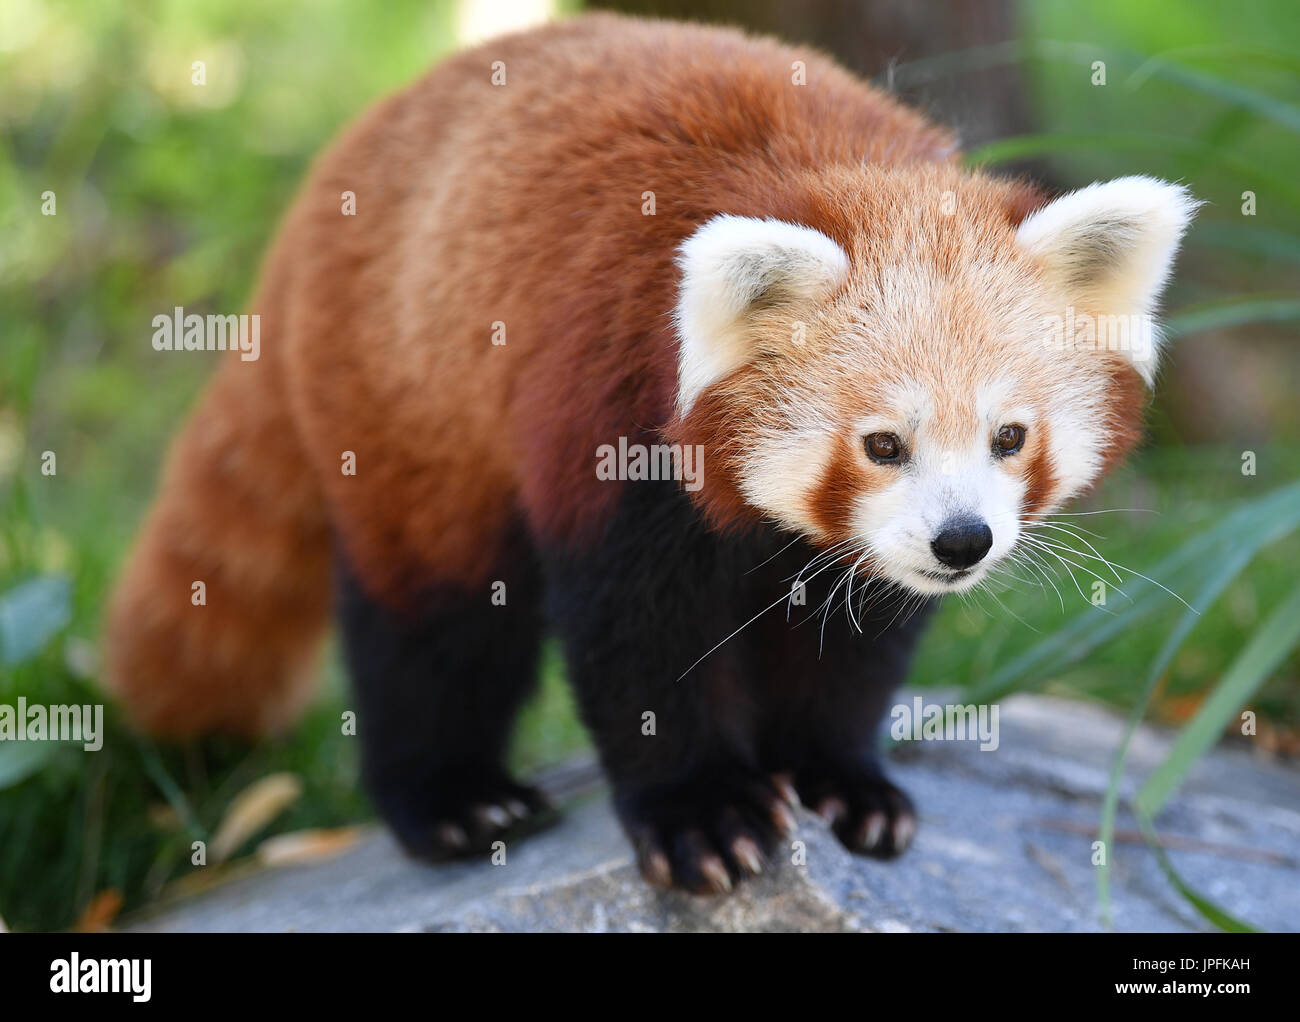 Leipzig, Germany. 1st Aug, 2017. A red panda in the newly opened Himalayan landscape enclosure in the zoo in Leipzig, Germany, 1 August 2017. The landscape with its sandy ground and boulders provides a perfect environment for the endangered red panda and snow leopard. Photo: Hendrik Schmidt/dpa-Zentralbild/dpa/Alamy Live News - Stock Image